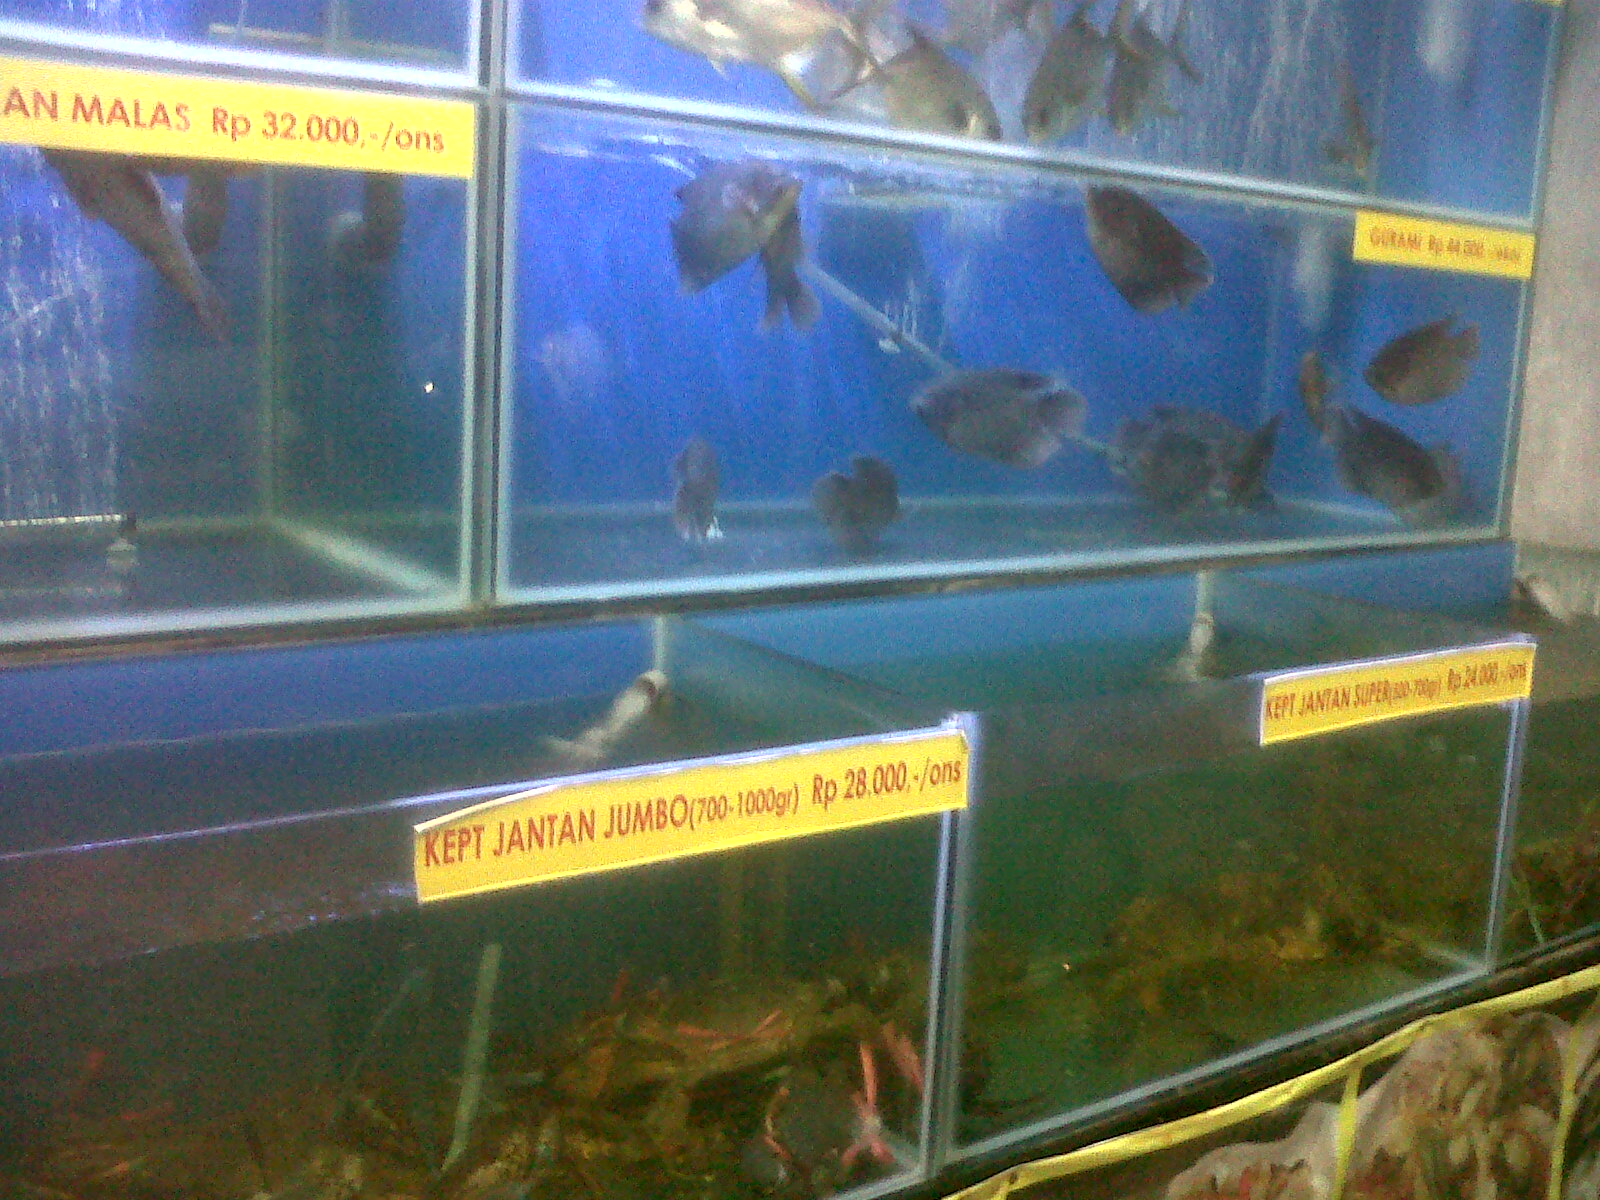 surabaya daun lada fish tank to choose oct13